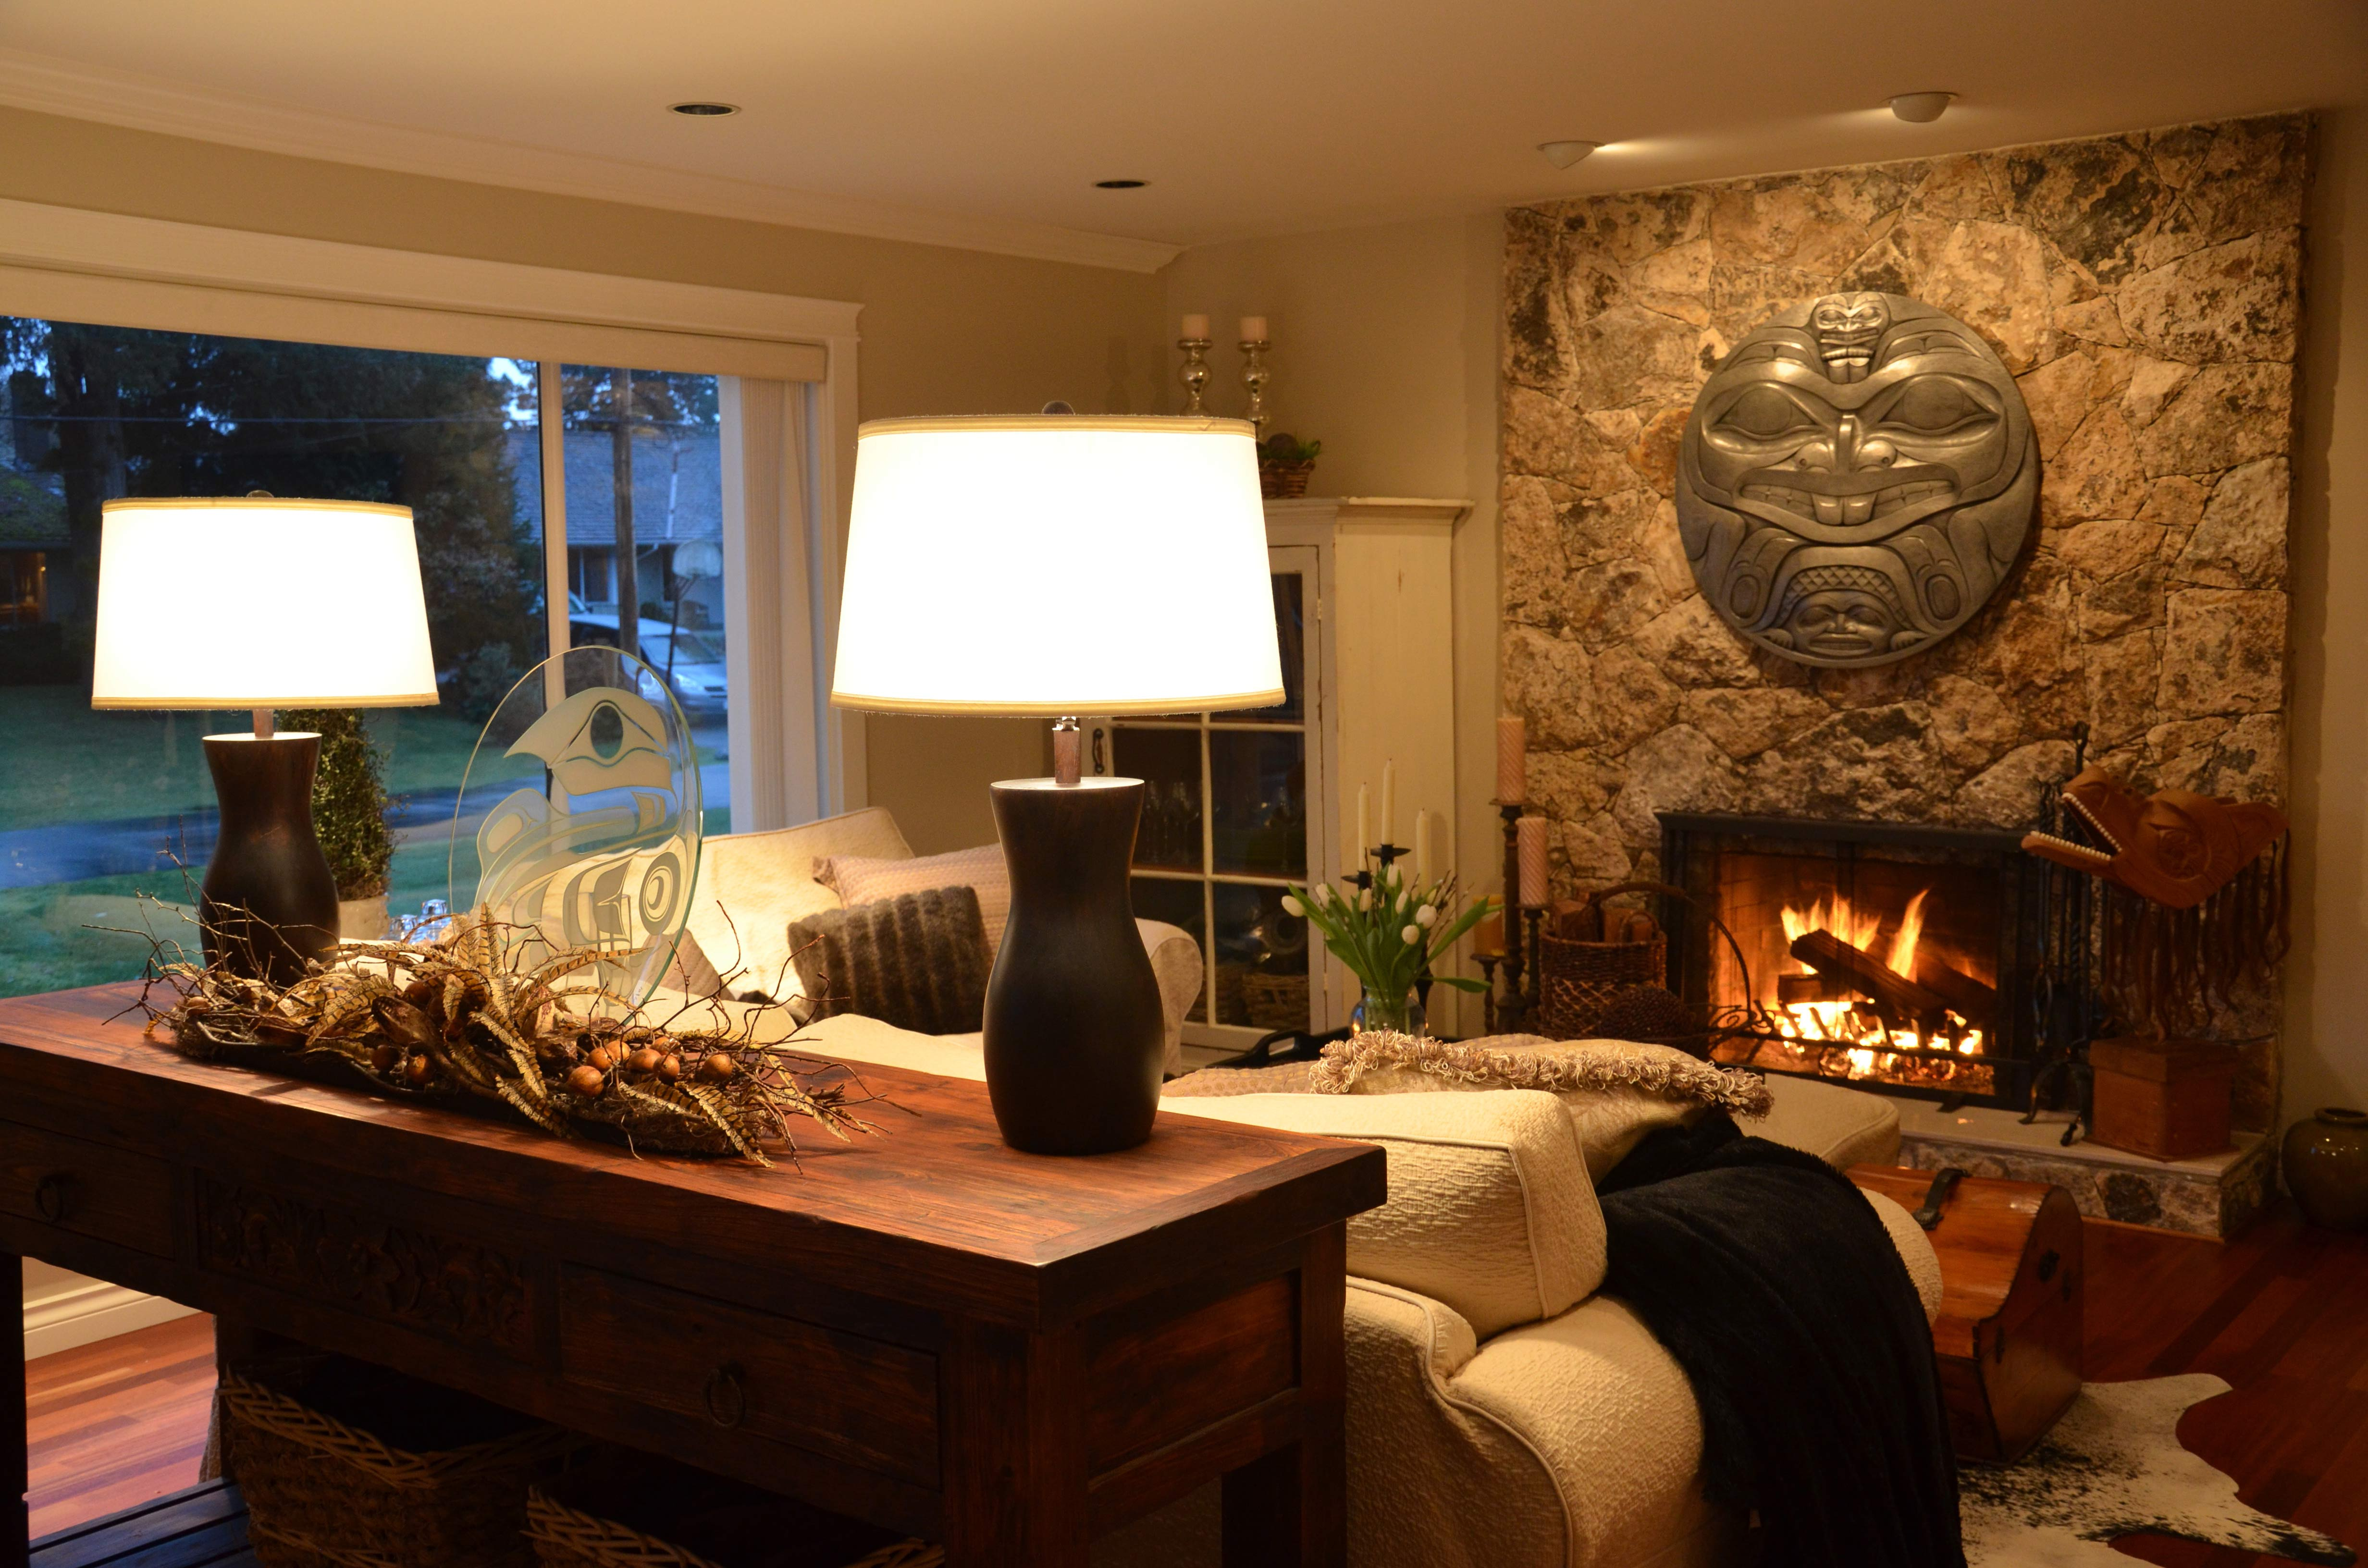 design living room layout pics of beautiful rooms best table lamps for lighting ideas | roy home ...